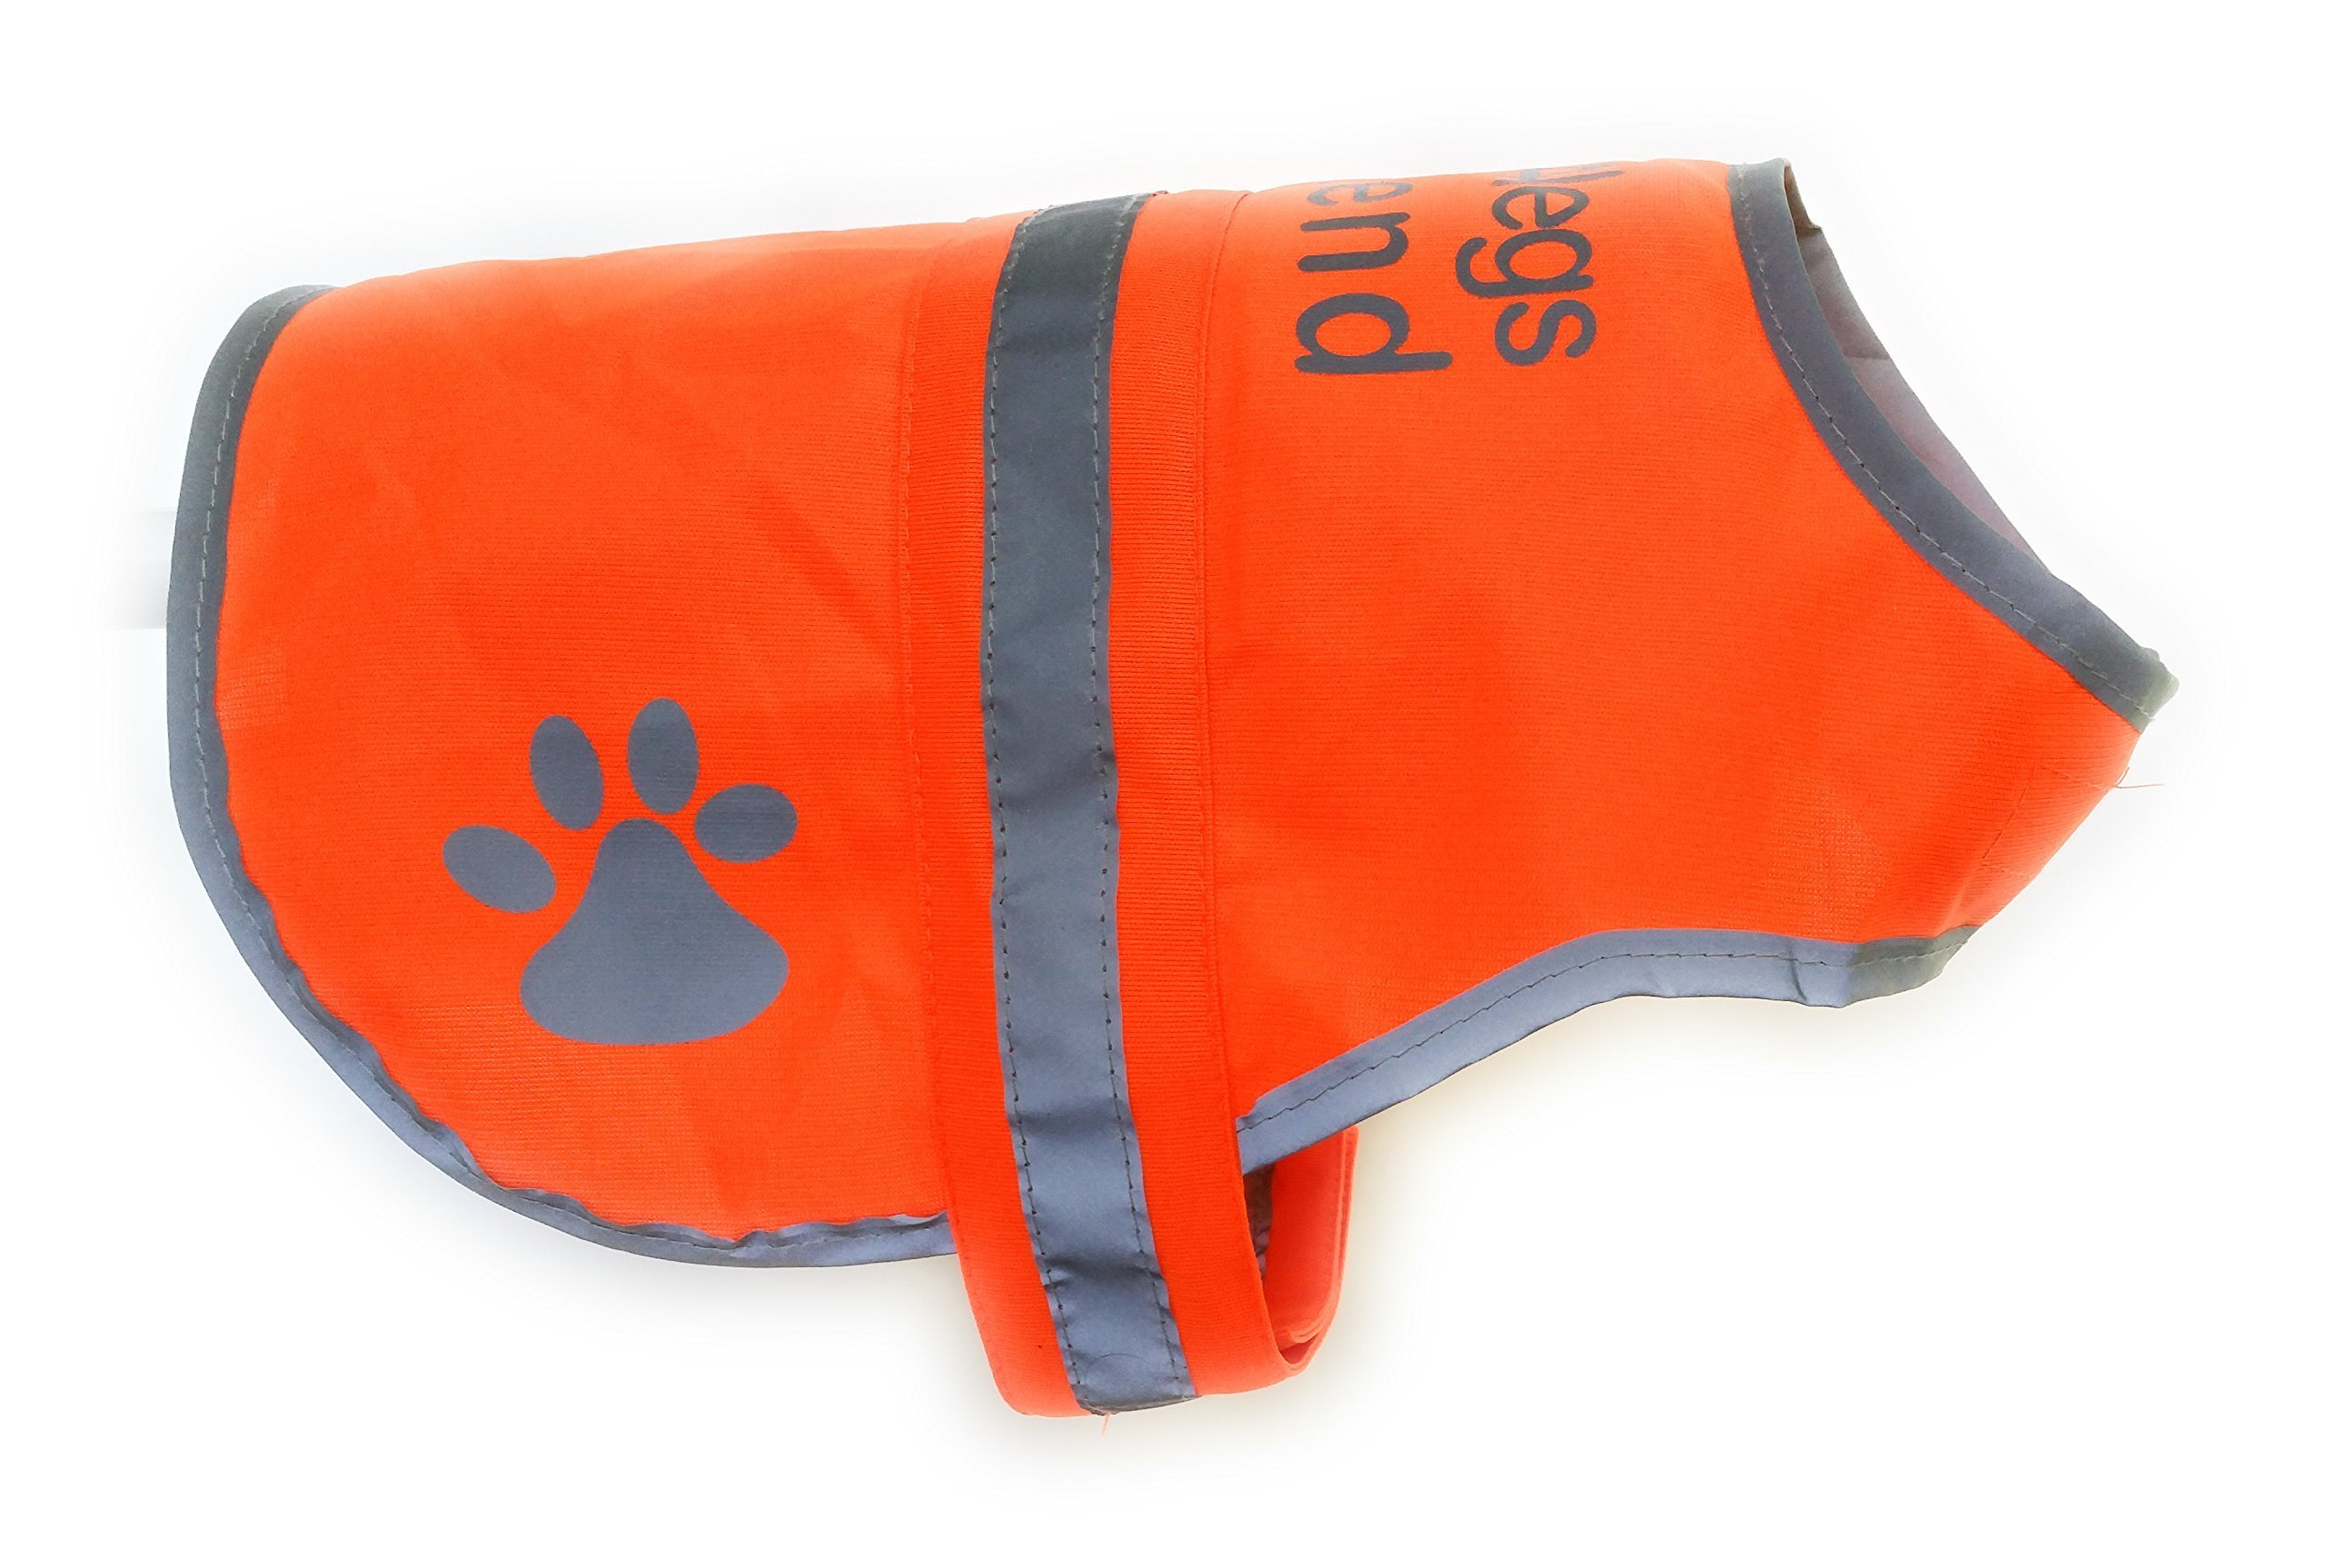 4LegsFriend Dog Safety Reflective Vest (5 Sizes, Medium) – High Visibility for Outdoor Activity Day and Night, Keep Your Dog Visible, Safe from Cars & Hunting Accidents | Blaze Orange